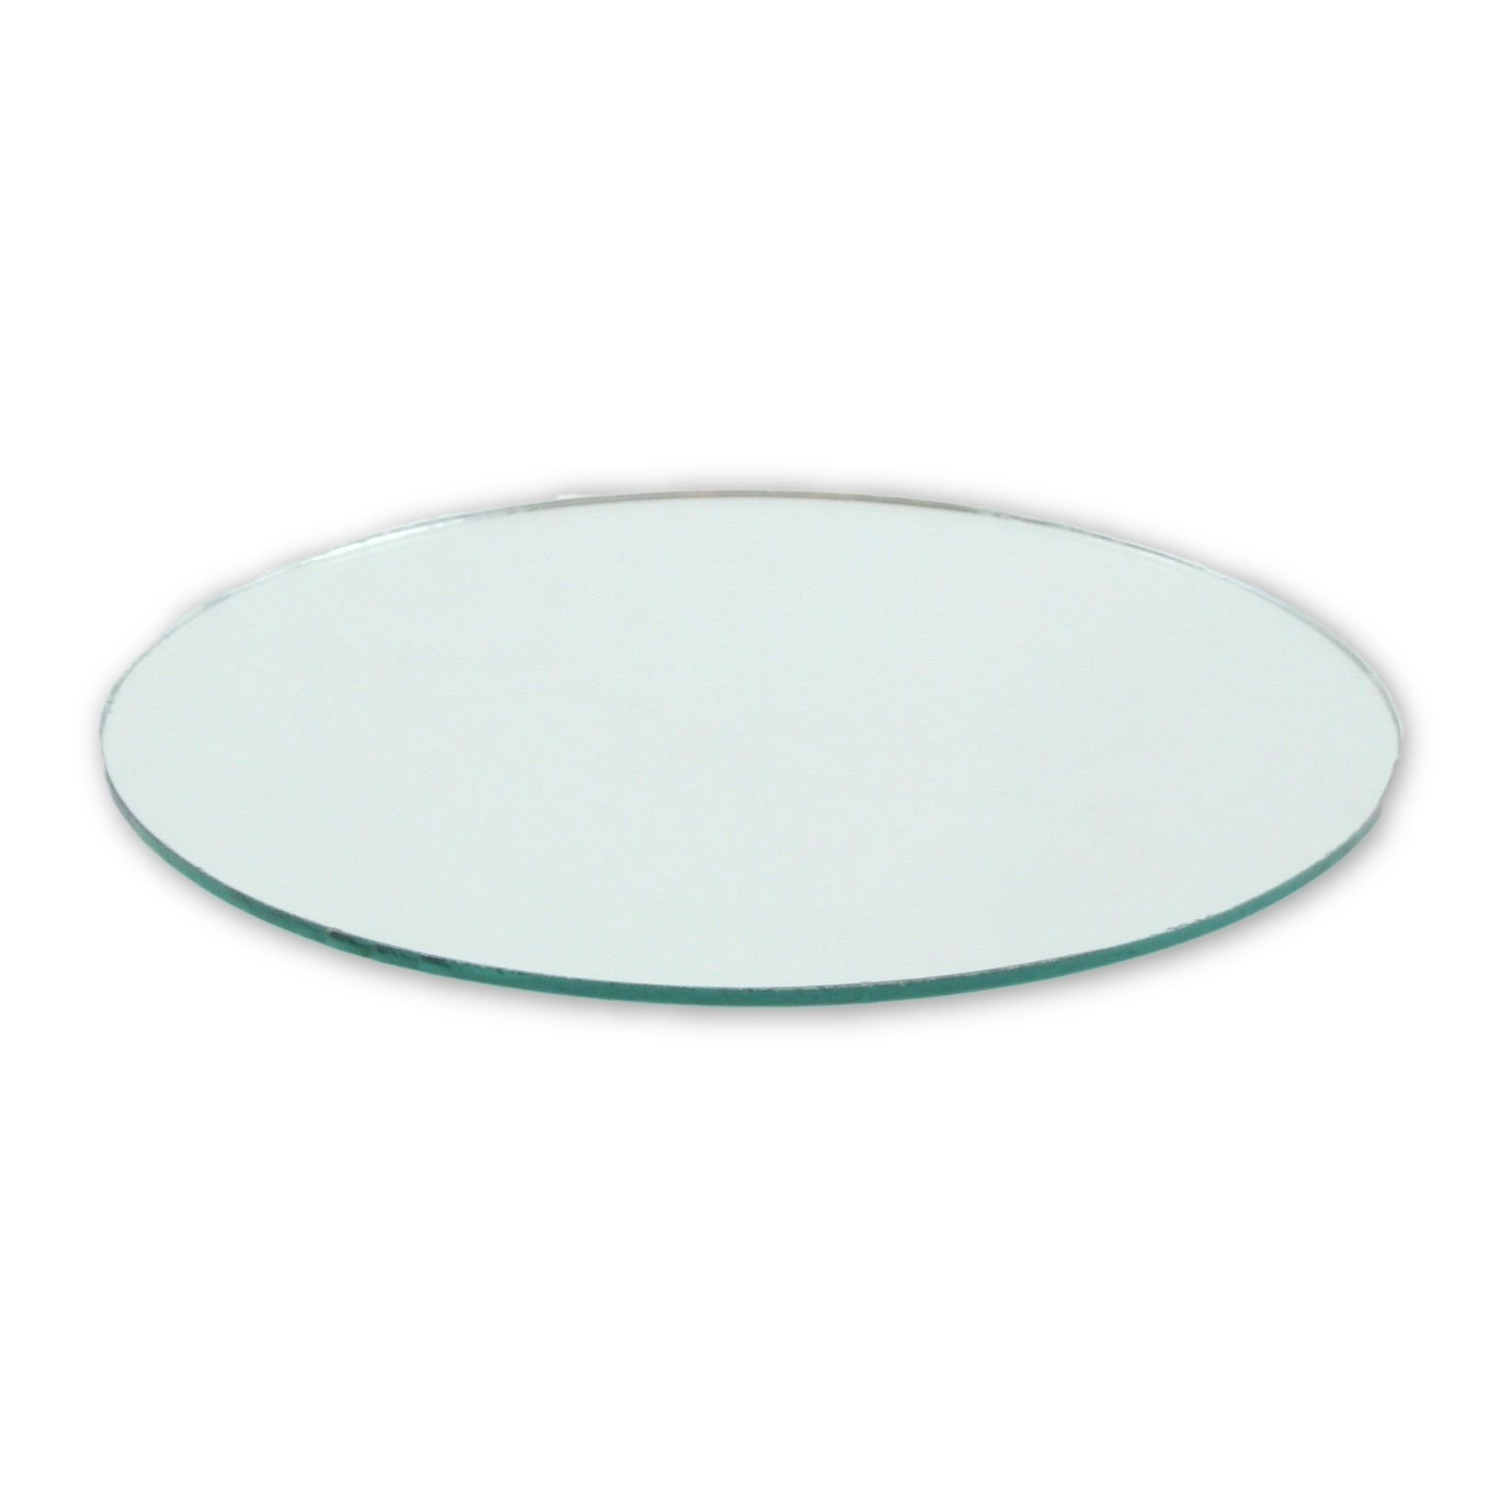 Small Mirror Pieces: 4 Inch Small Round Craft Mirrors Tiles Bulk Wholesale